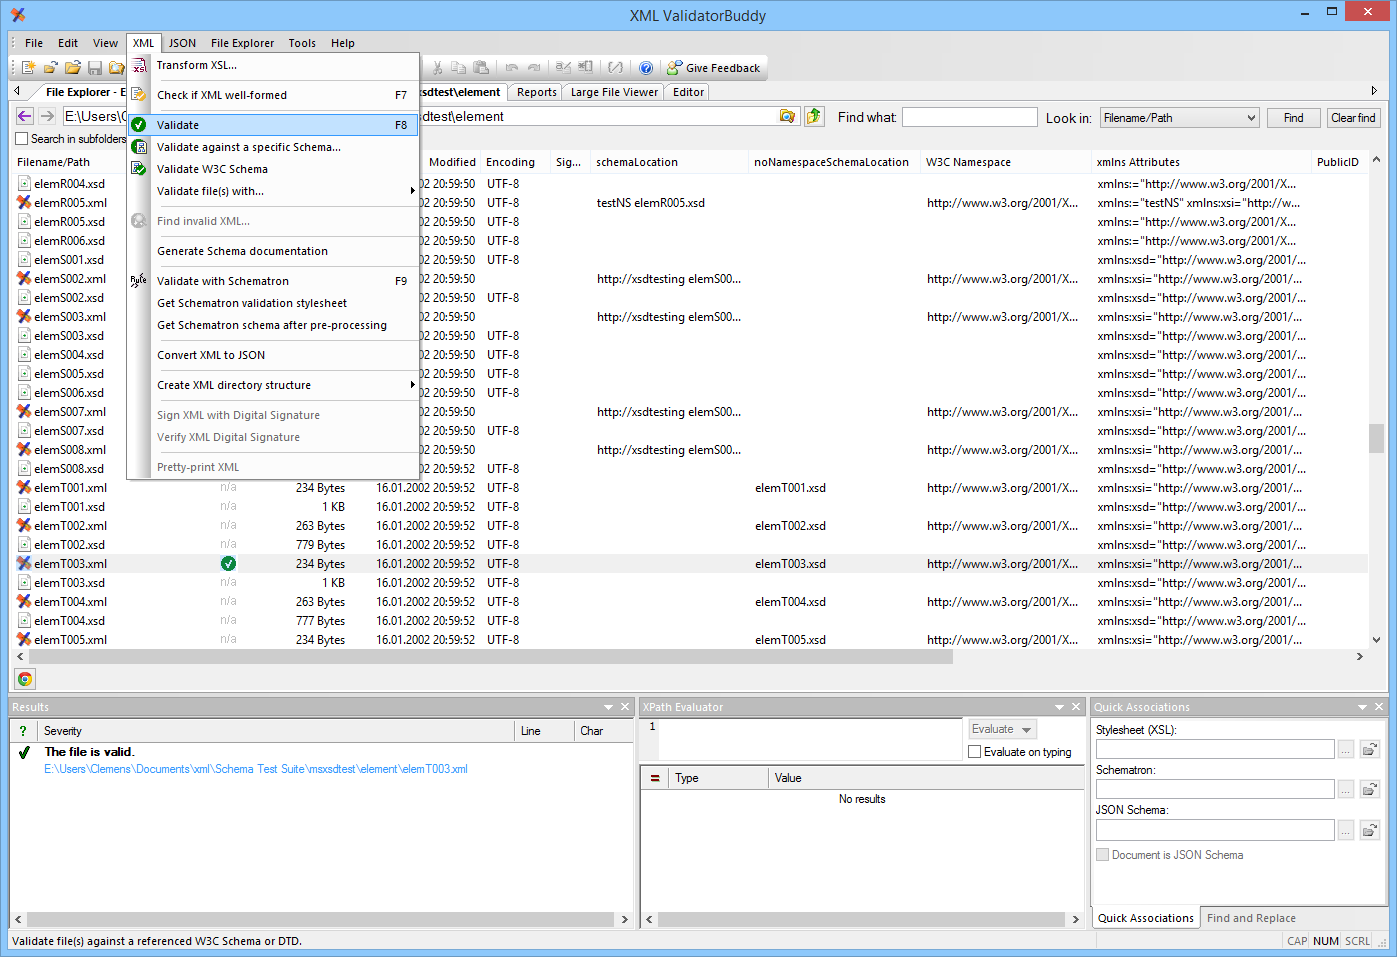 Development Software, XML ValidatorBuddy Screenshot